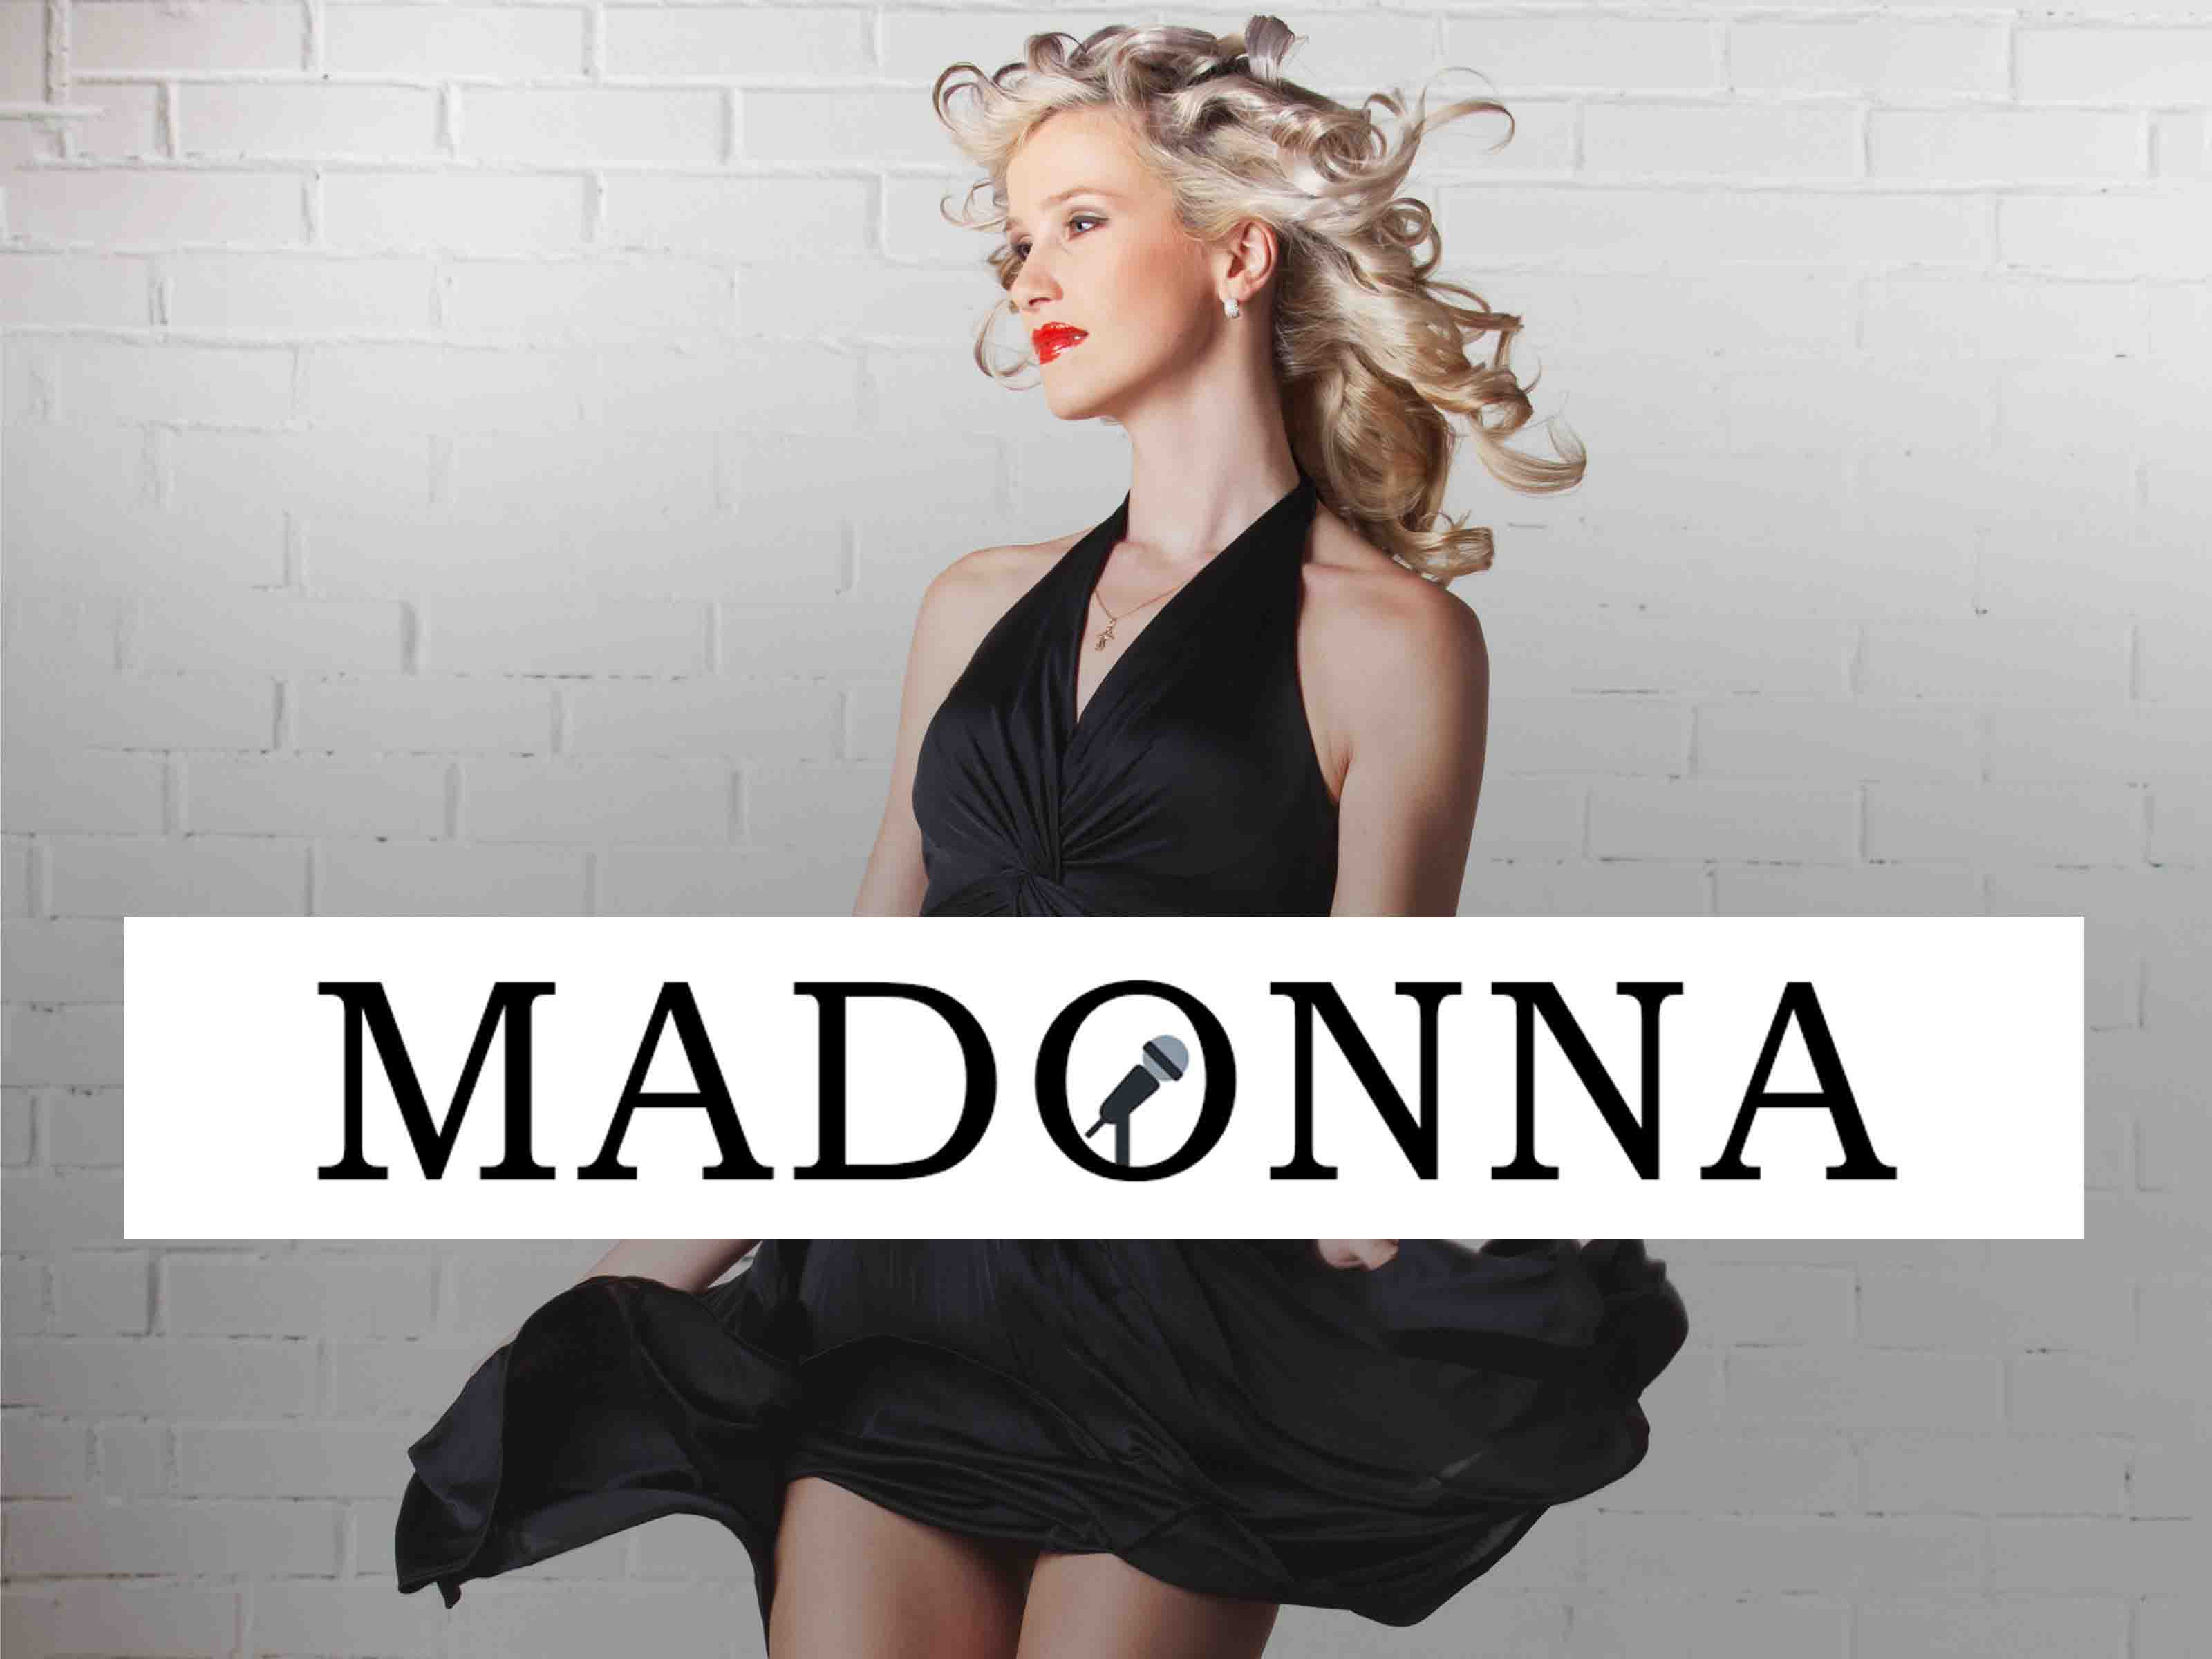 Hen Party Themes - Madonna